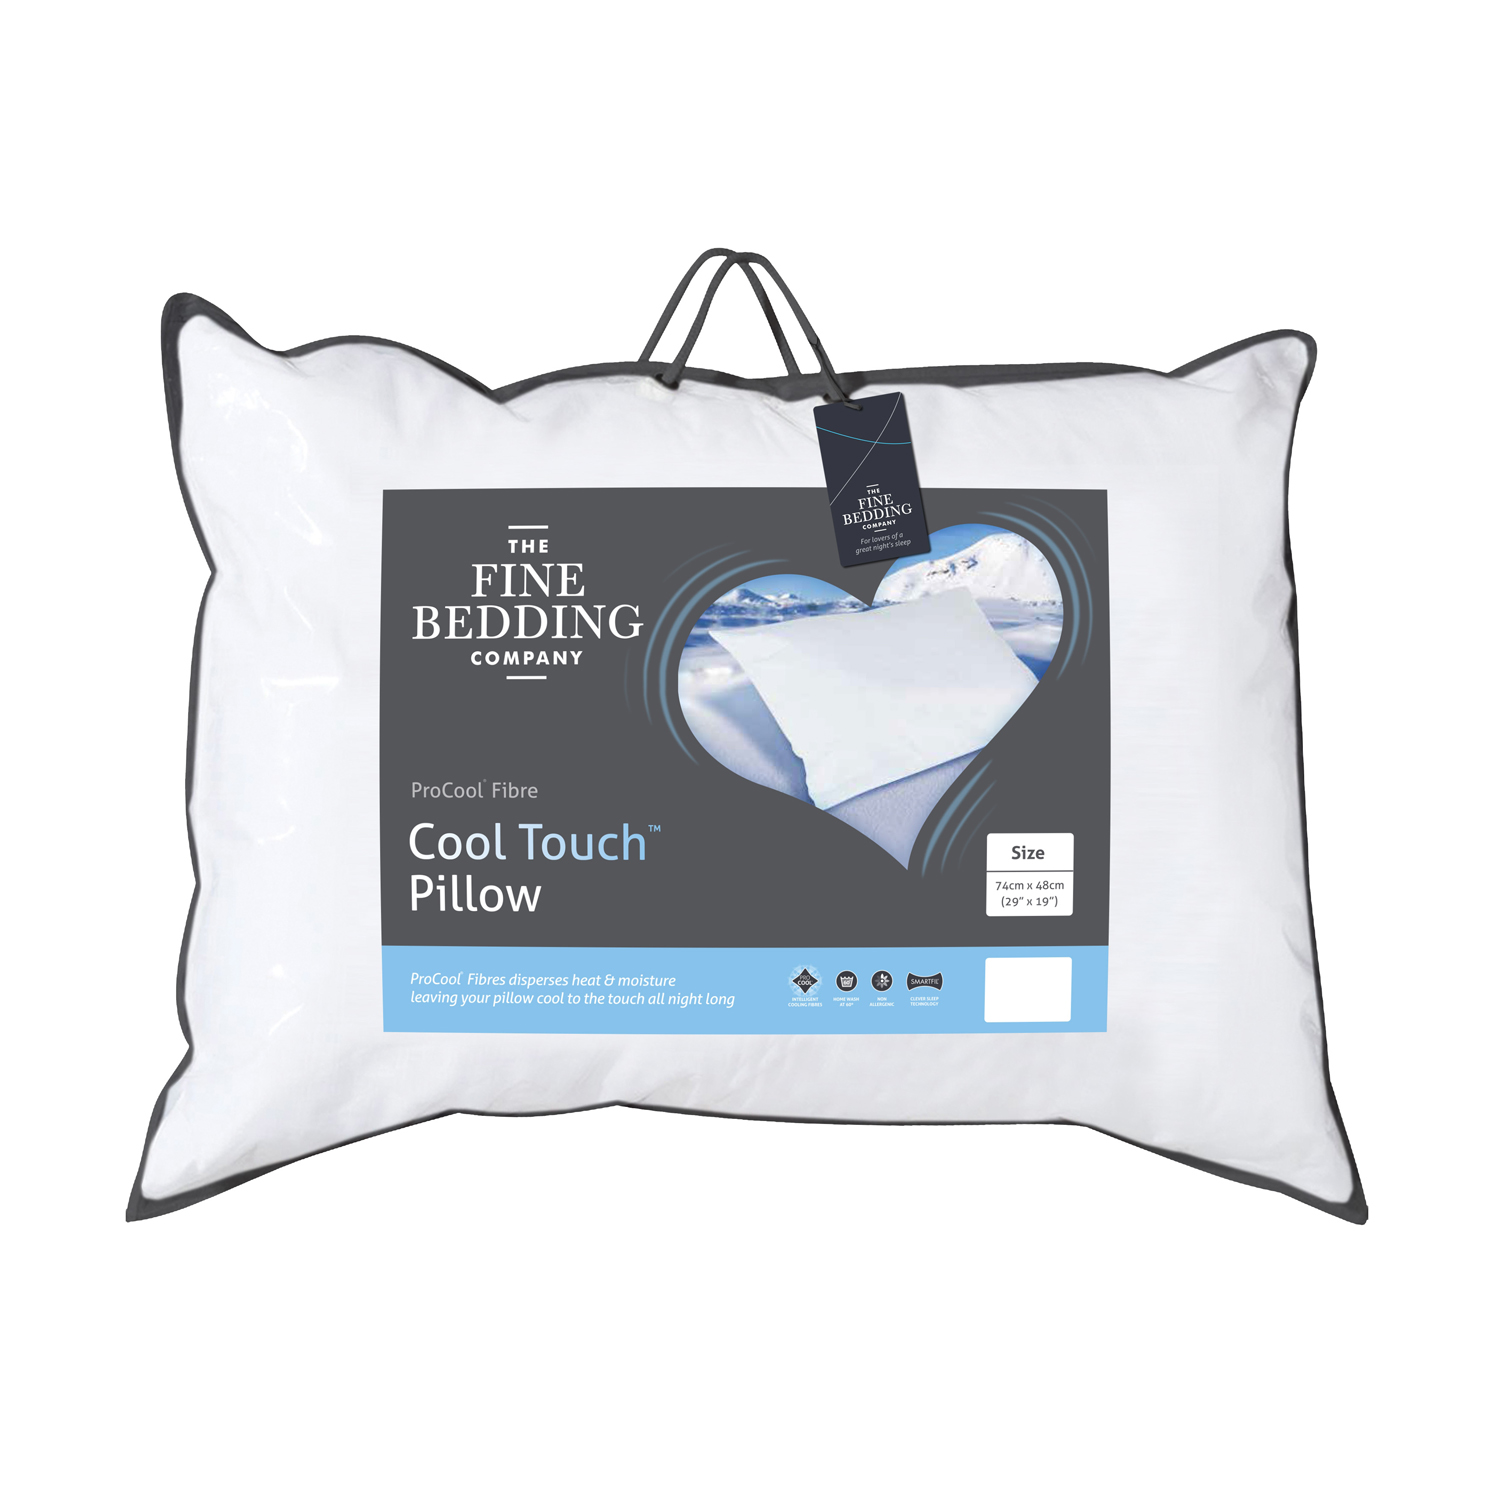 Image of Fine Bedding Company Cool Touch Pillow, 70cmx40cm